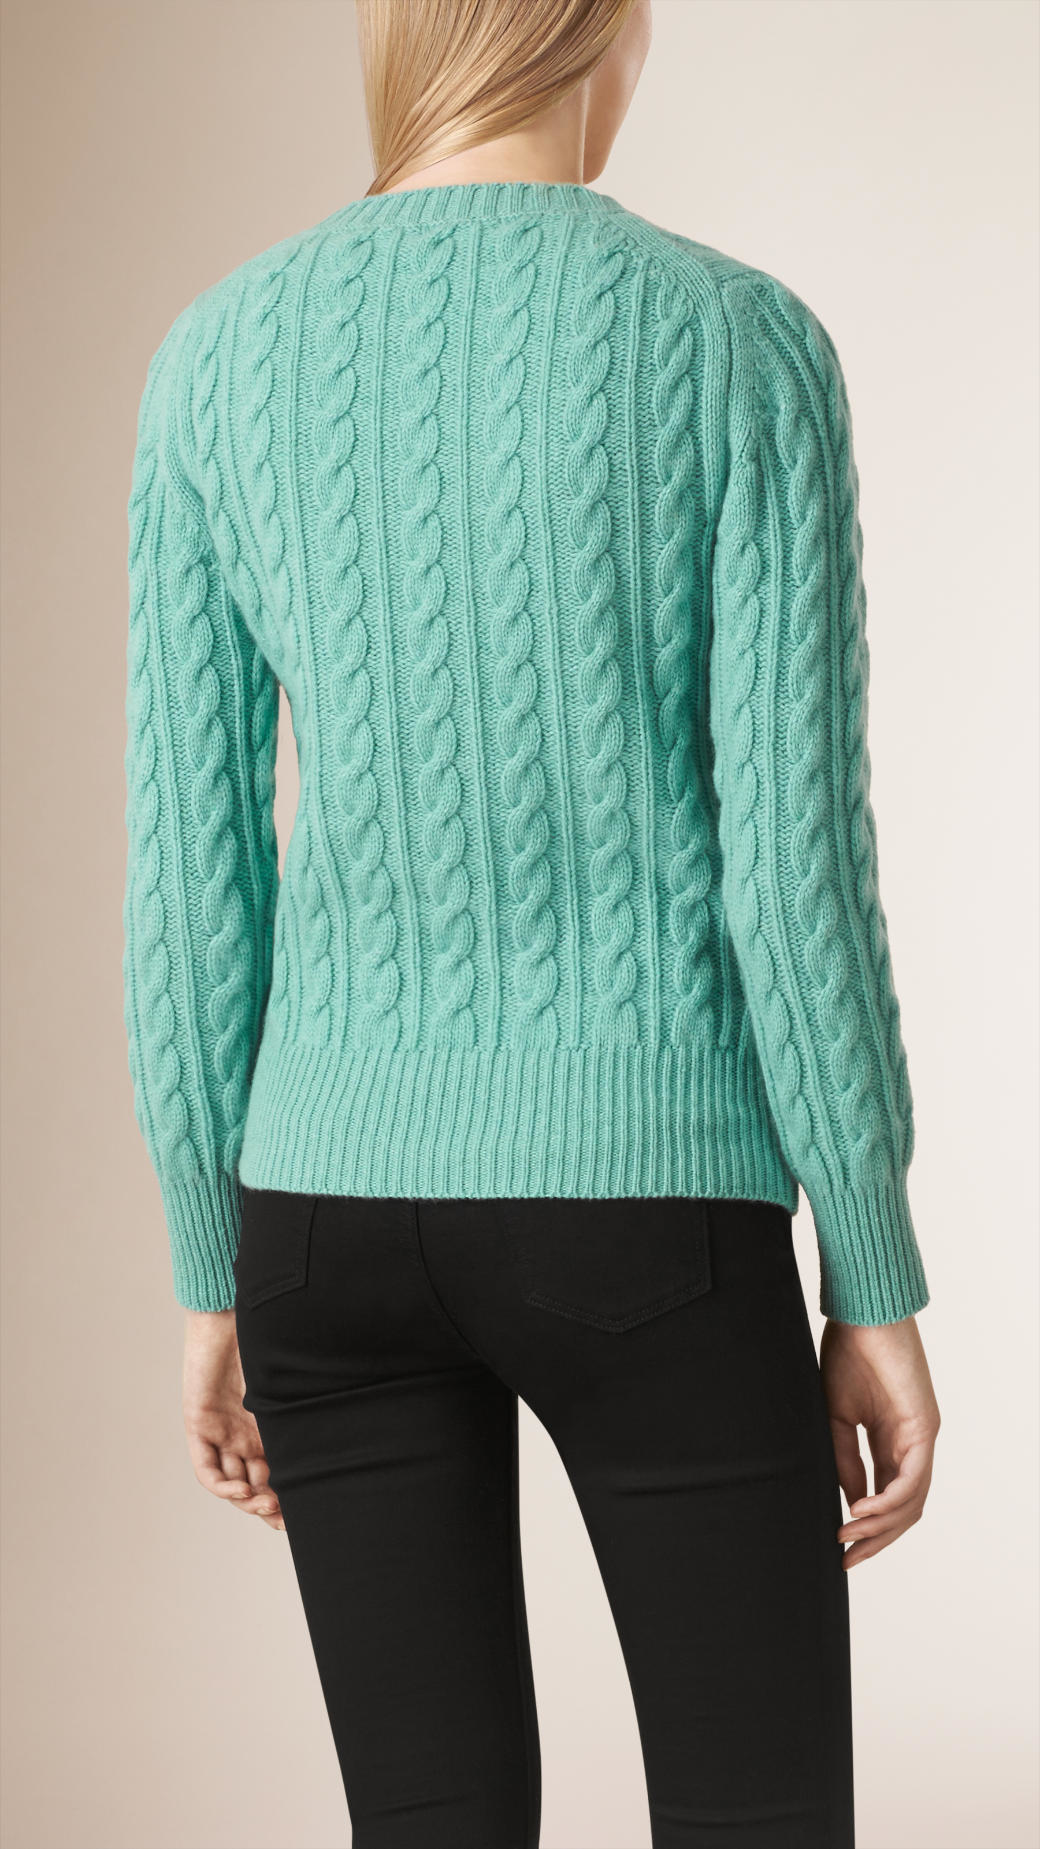 Wool Sweater Grey: Burberry Cable Knit Wool Cashmere Sweater Dusty